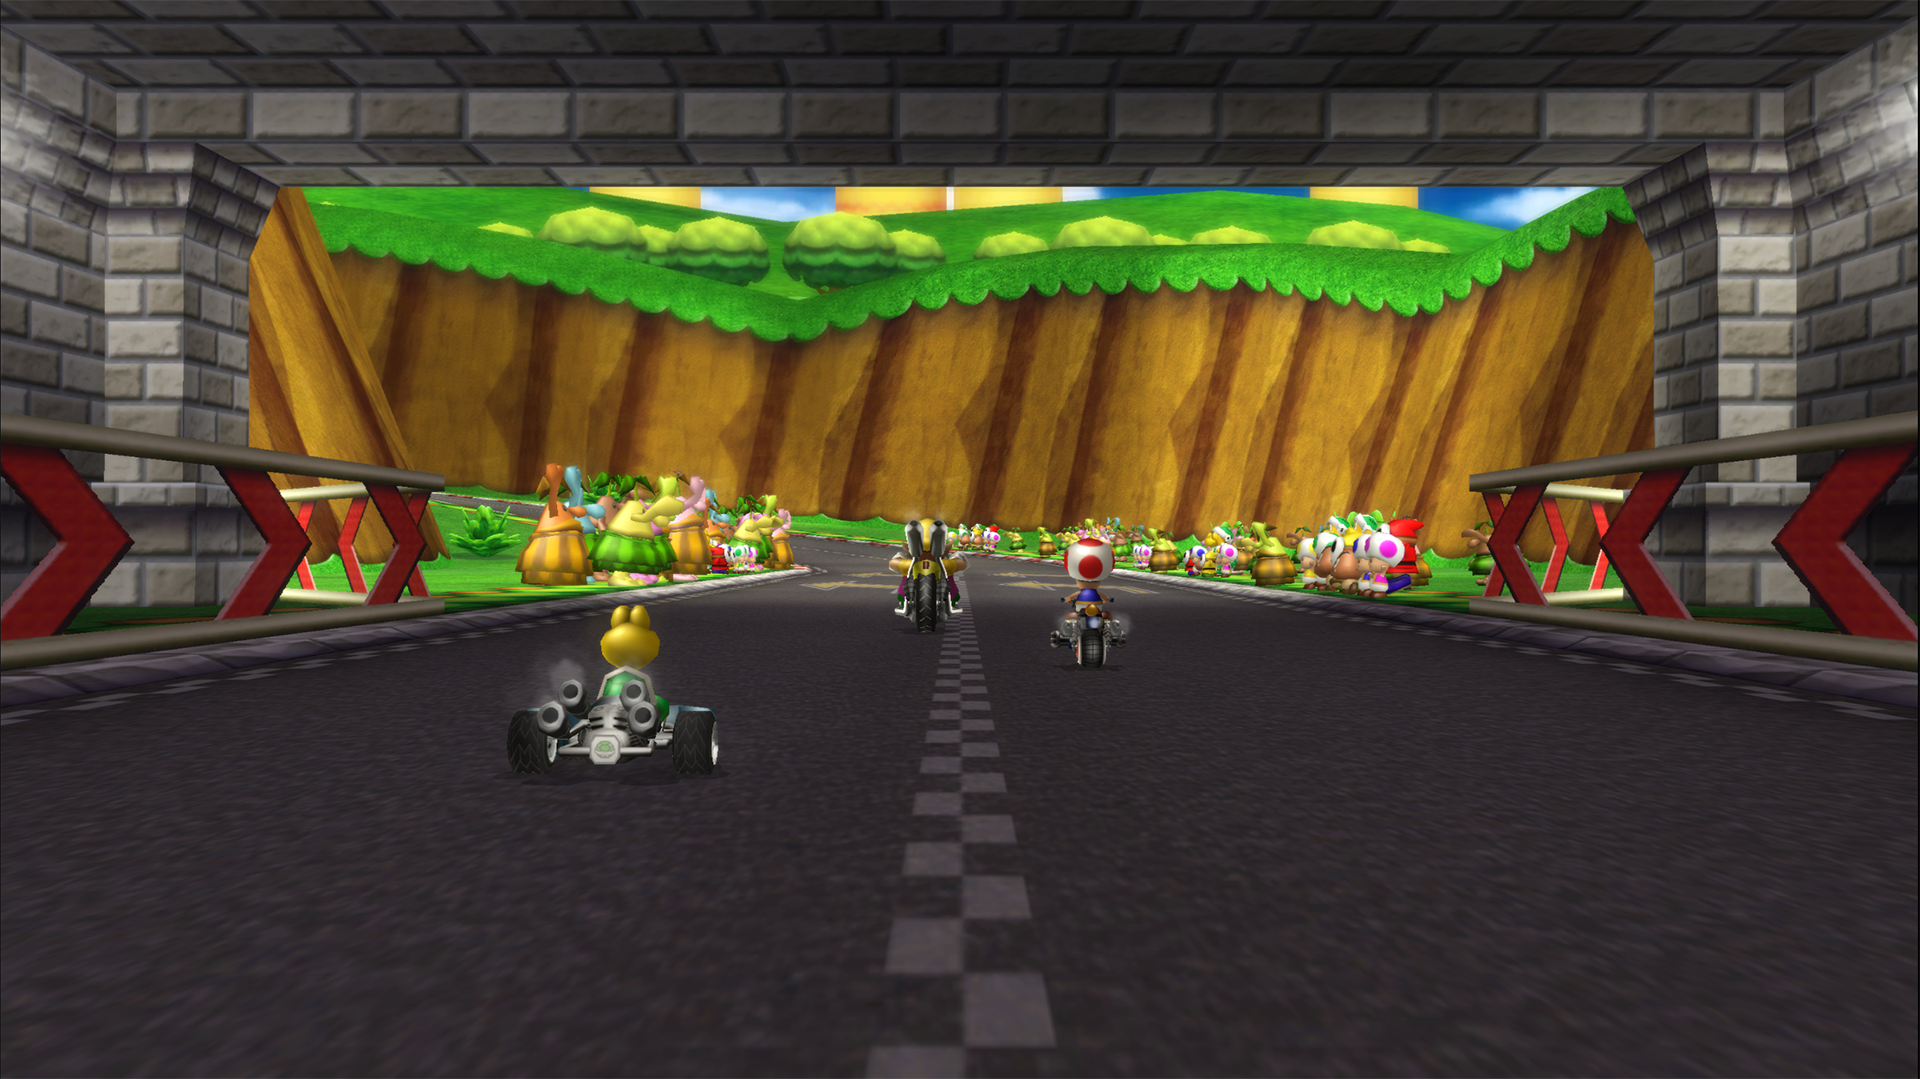 Mario Kart Wii Wallpaper And Background Image 1920x1079